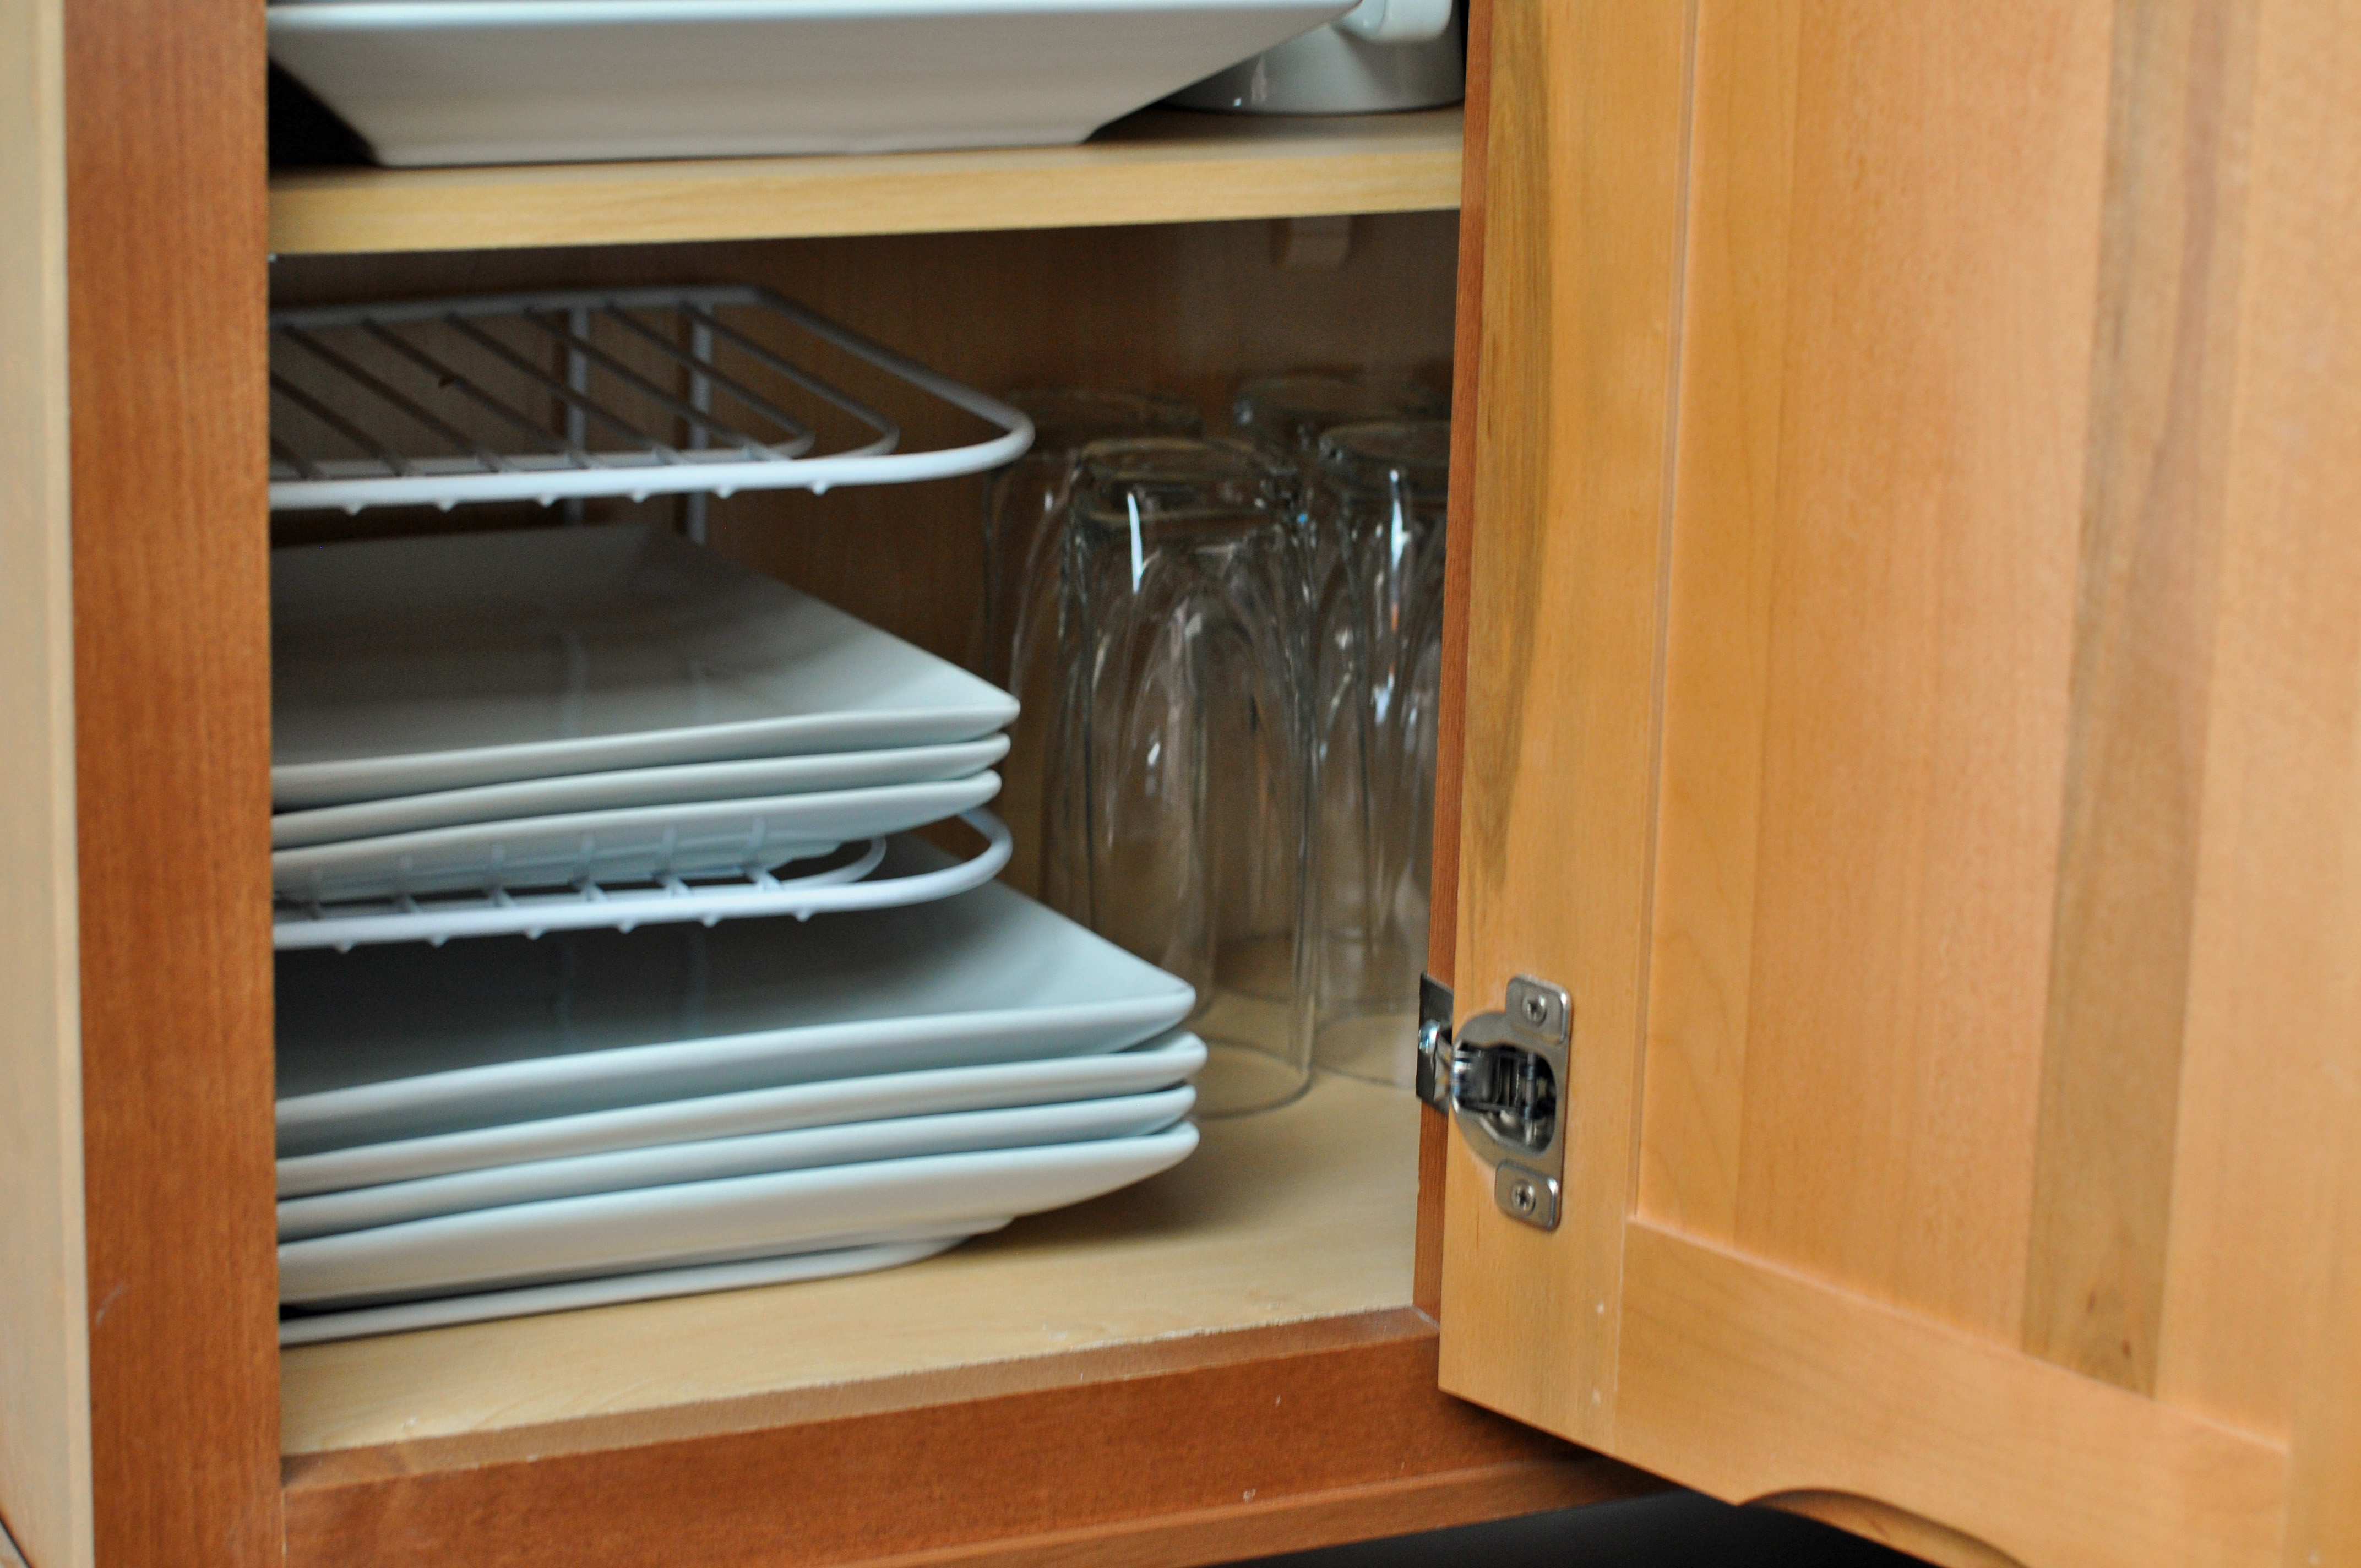 Adding A Decorative Touch To The Cabinets With Duck Brand